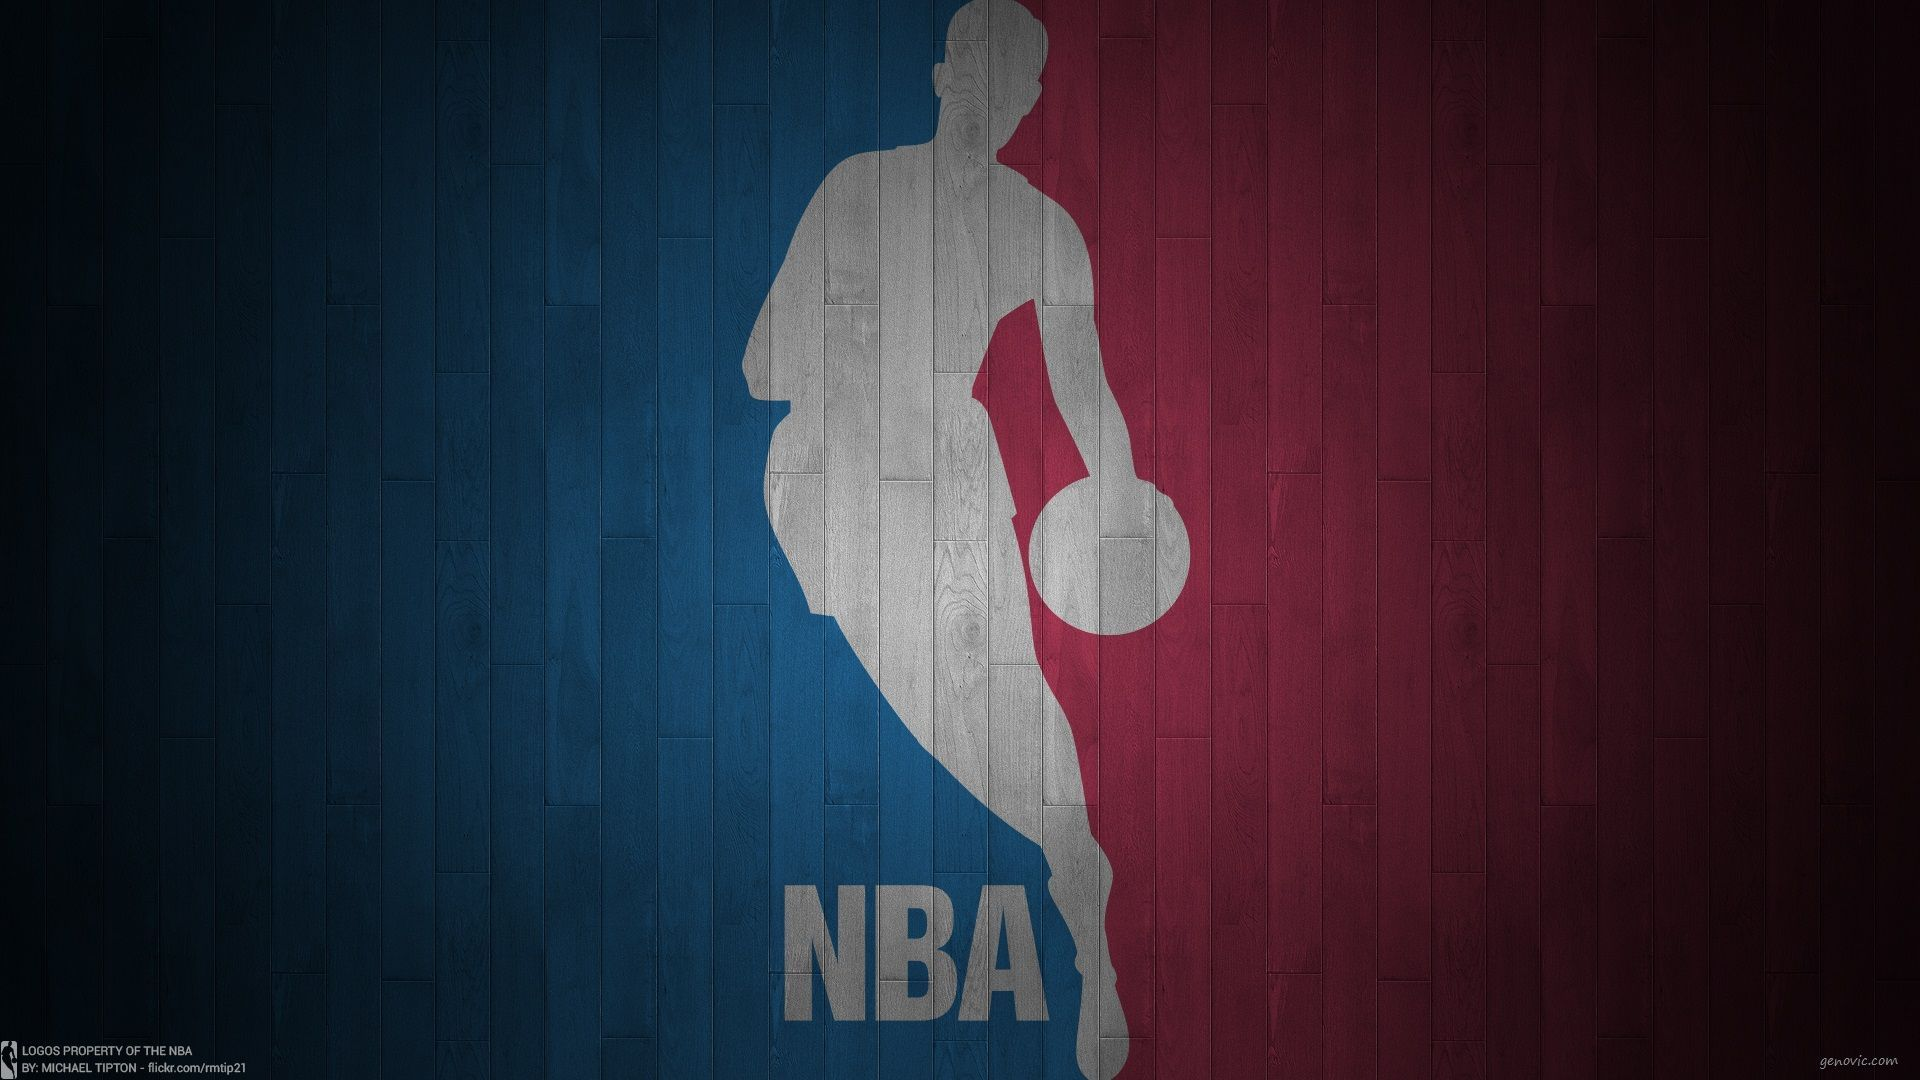 1920x1080 Nba Wallpaper Full HD #BAS | Awesomeness | NBA, Nba players, dan ...